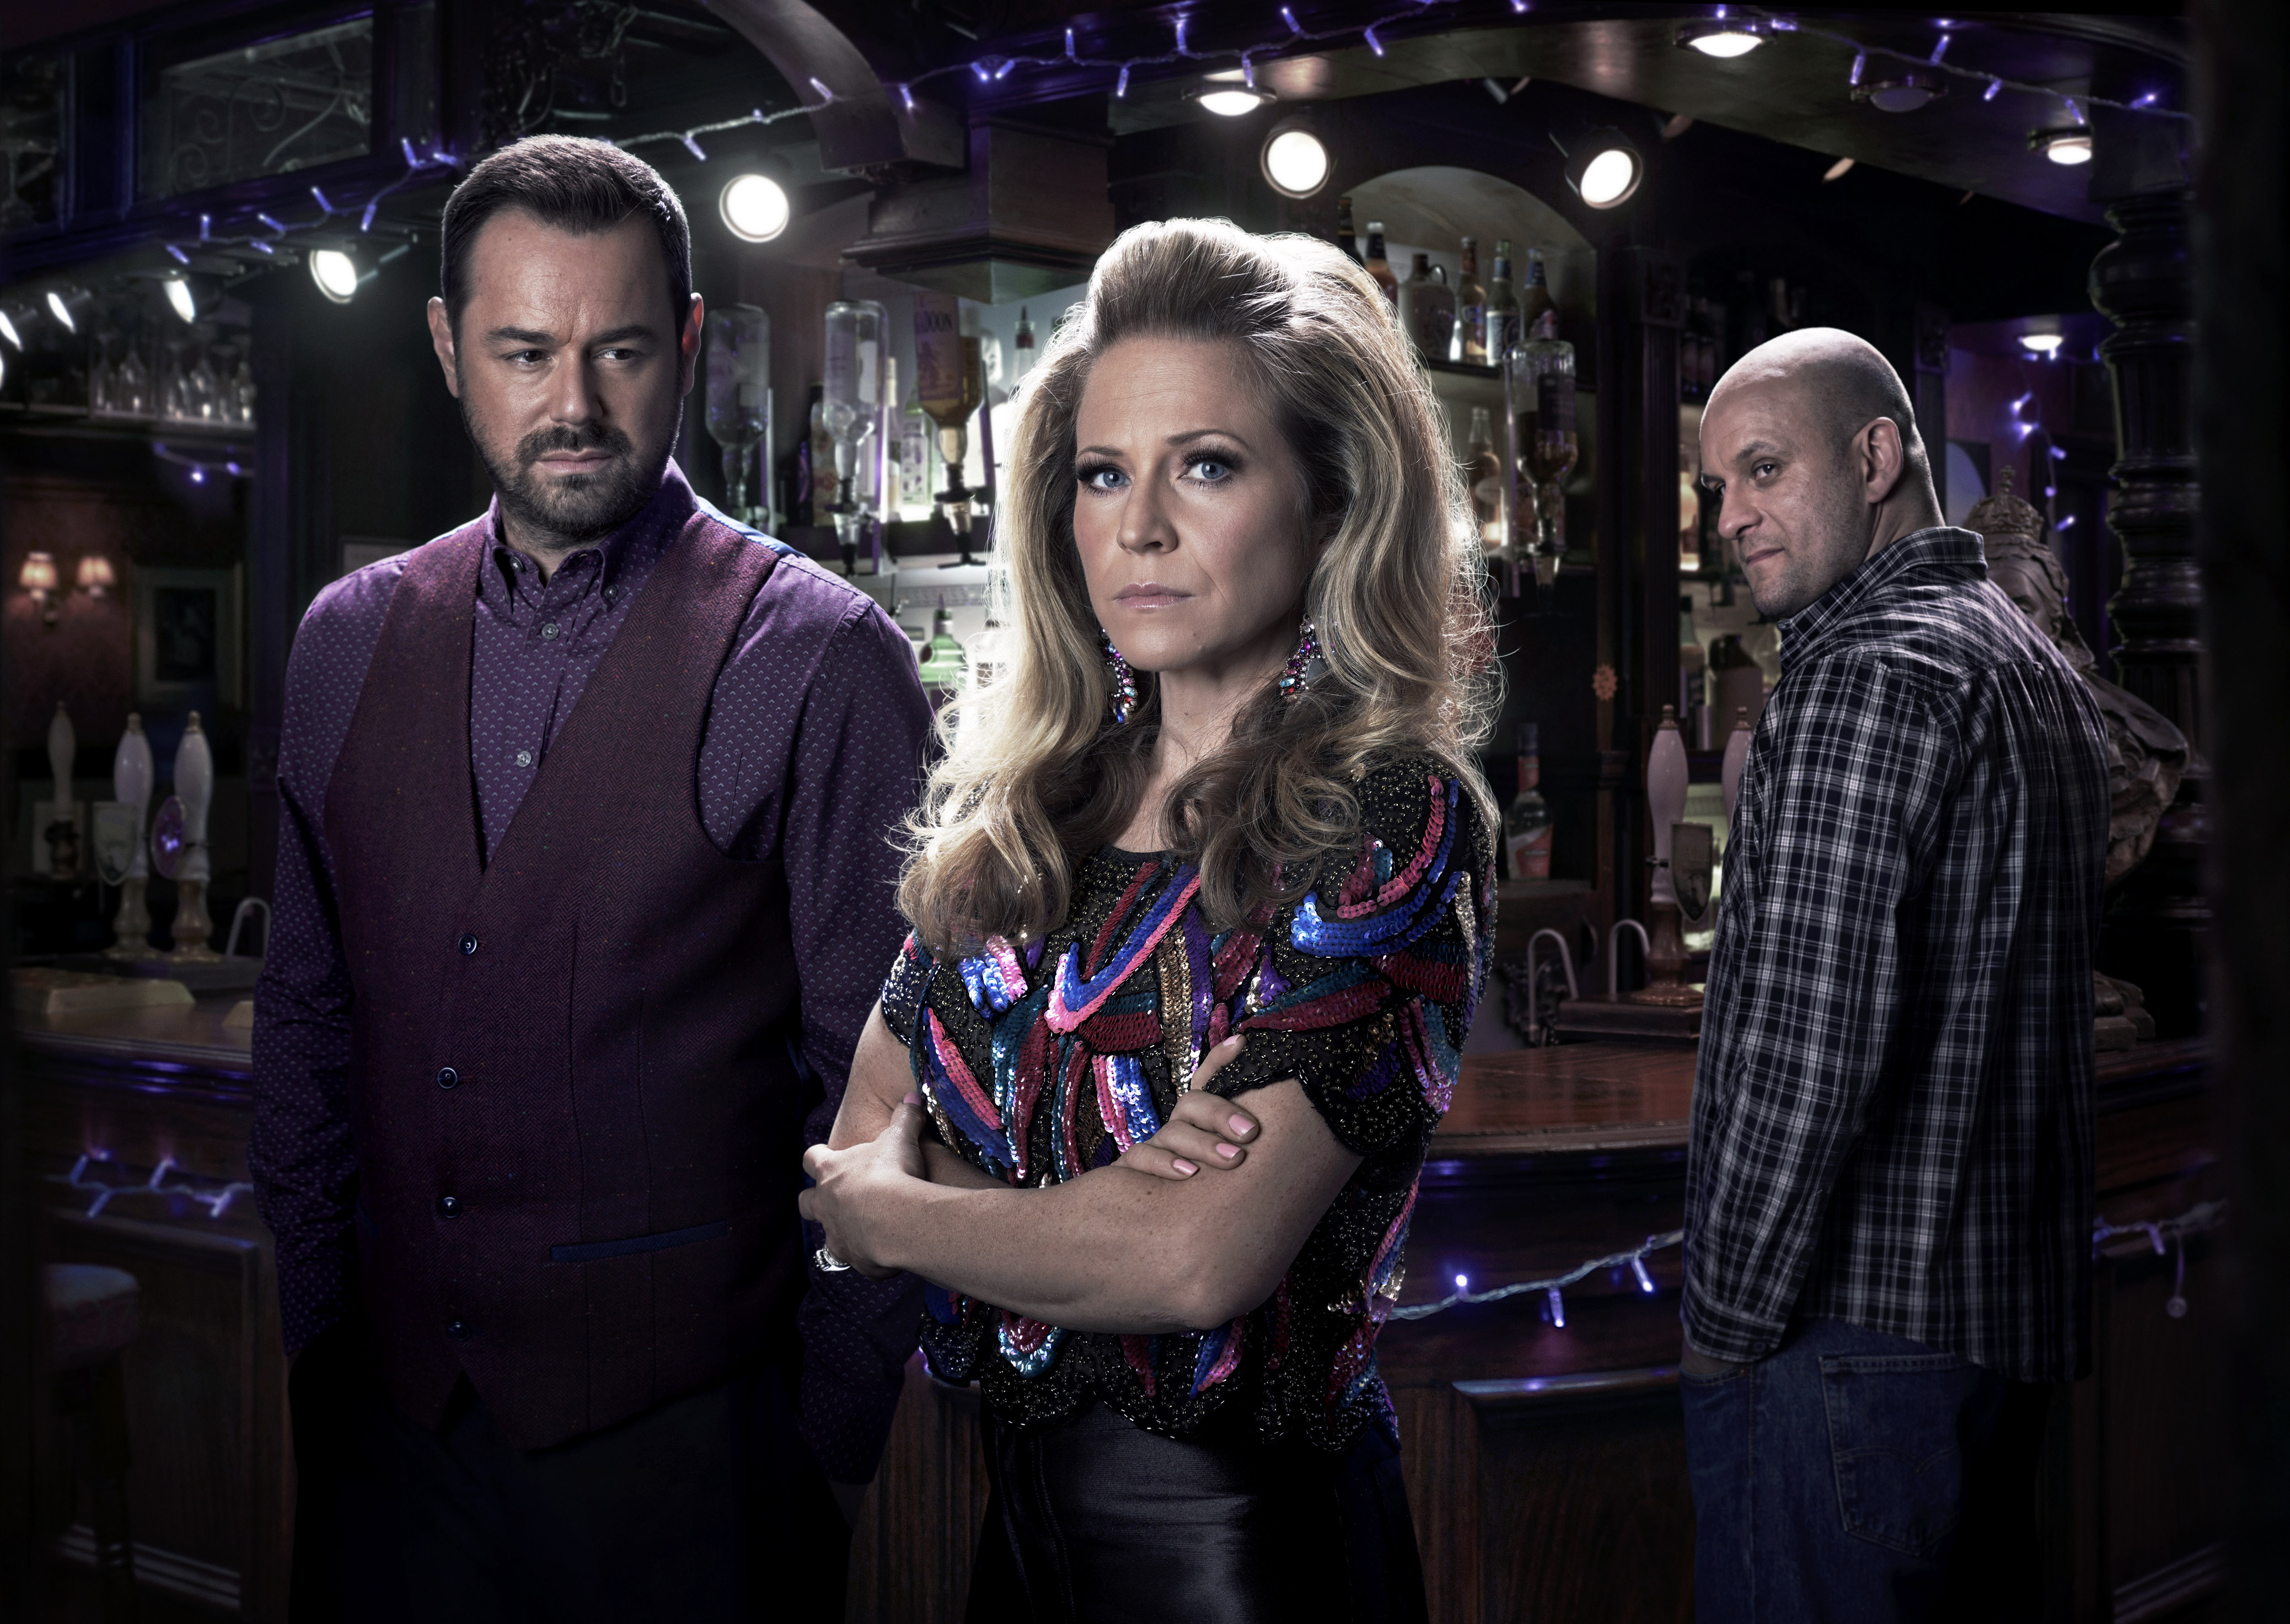 EastEnders spoilers: Can Mick and Linda Carter's marriage survive the truth?